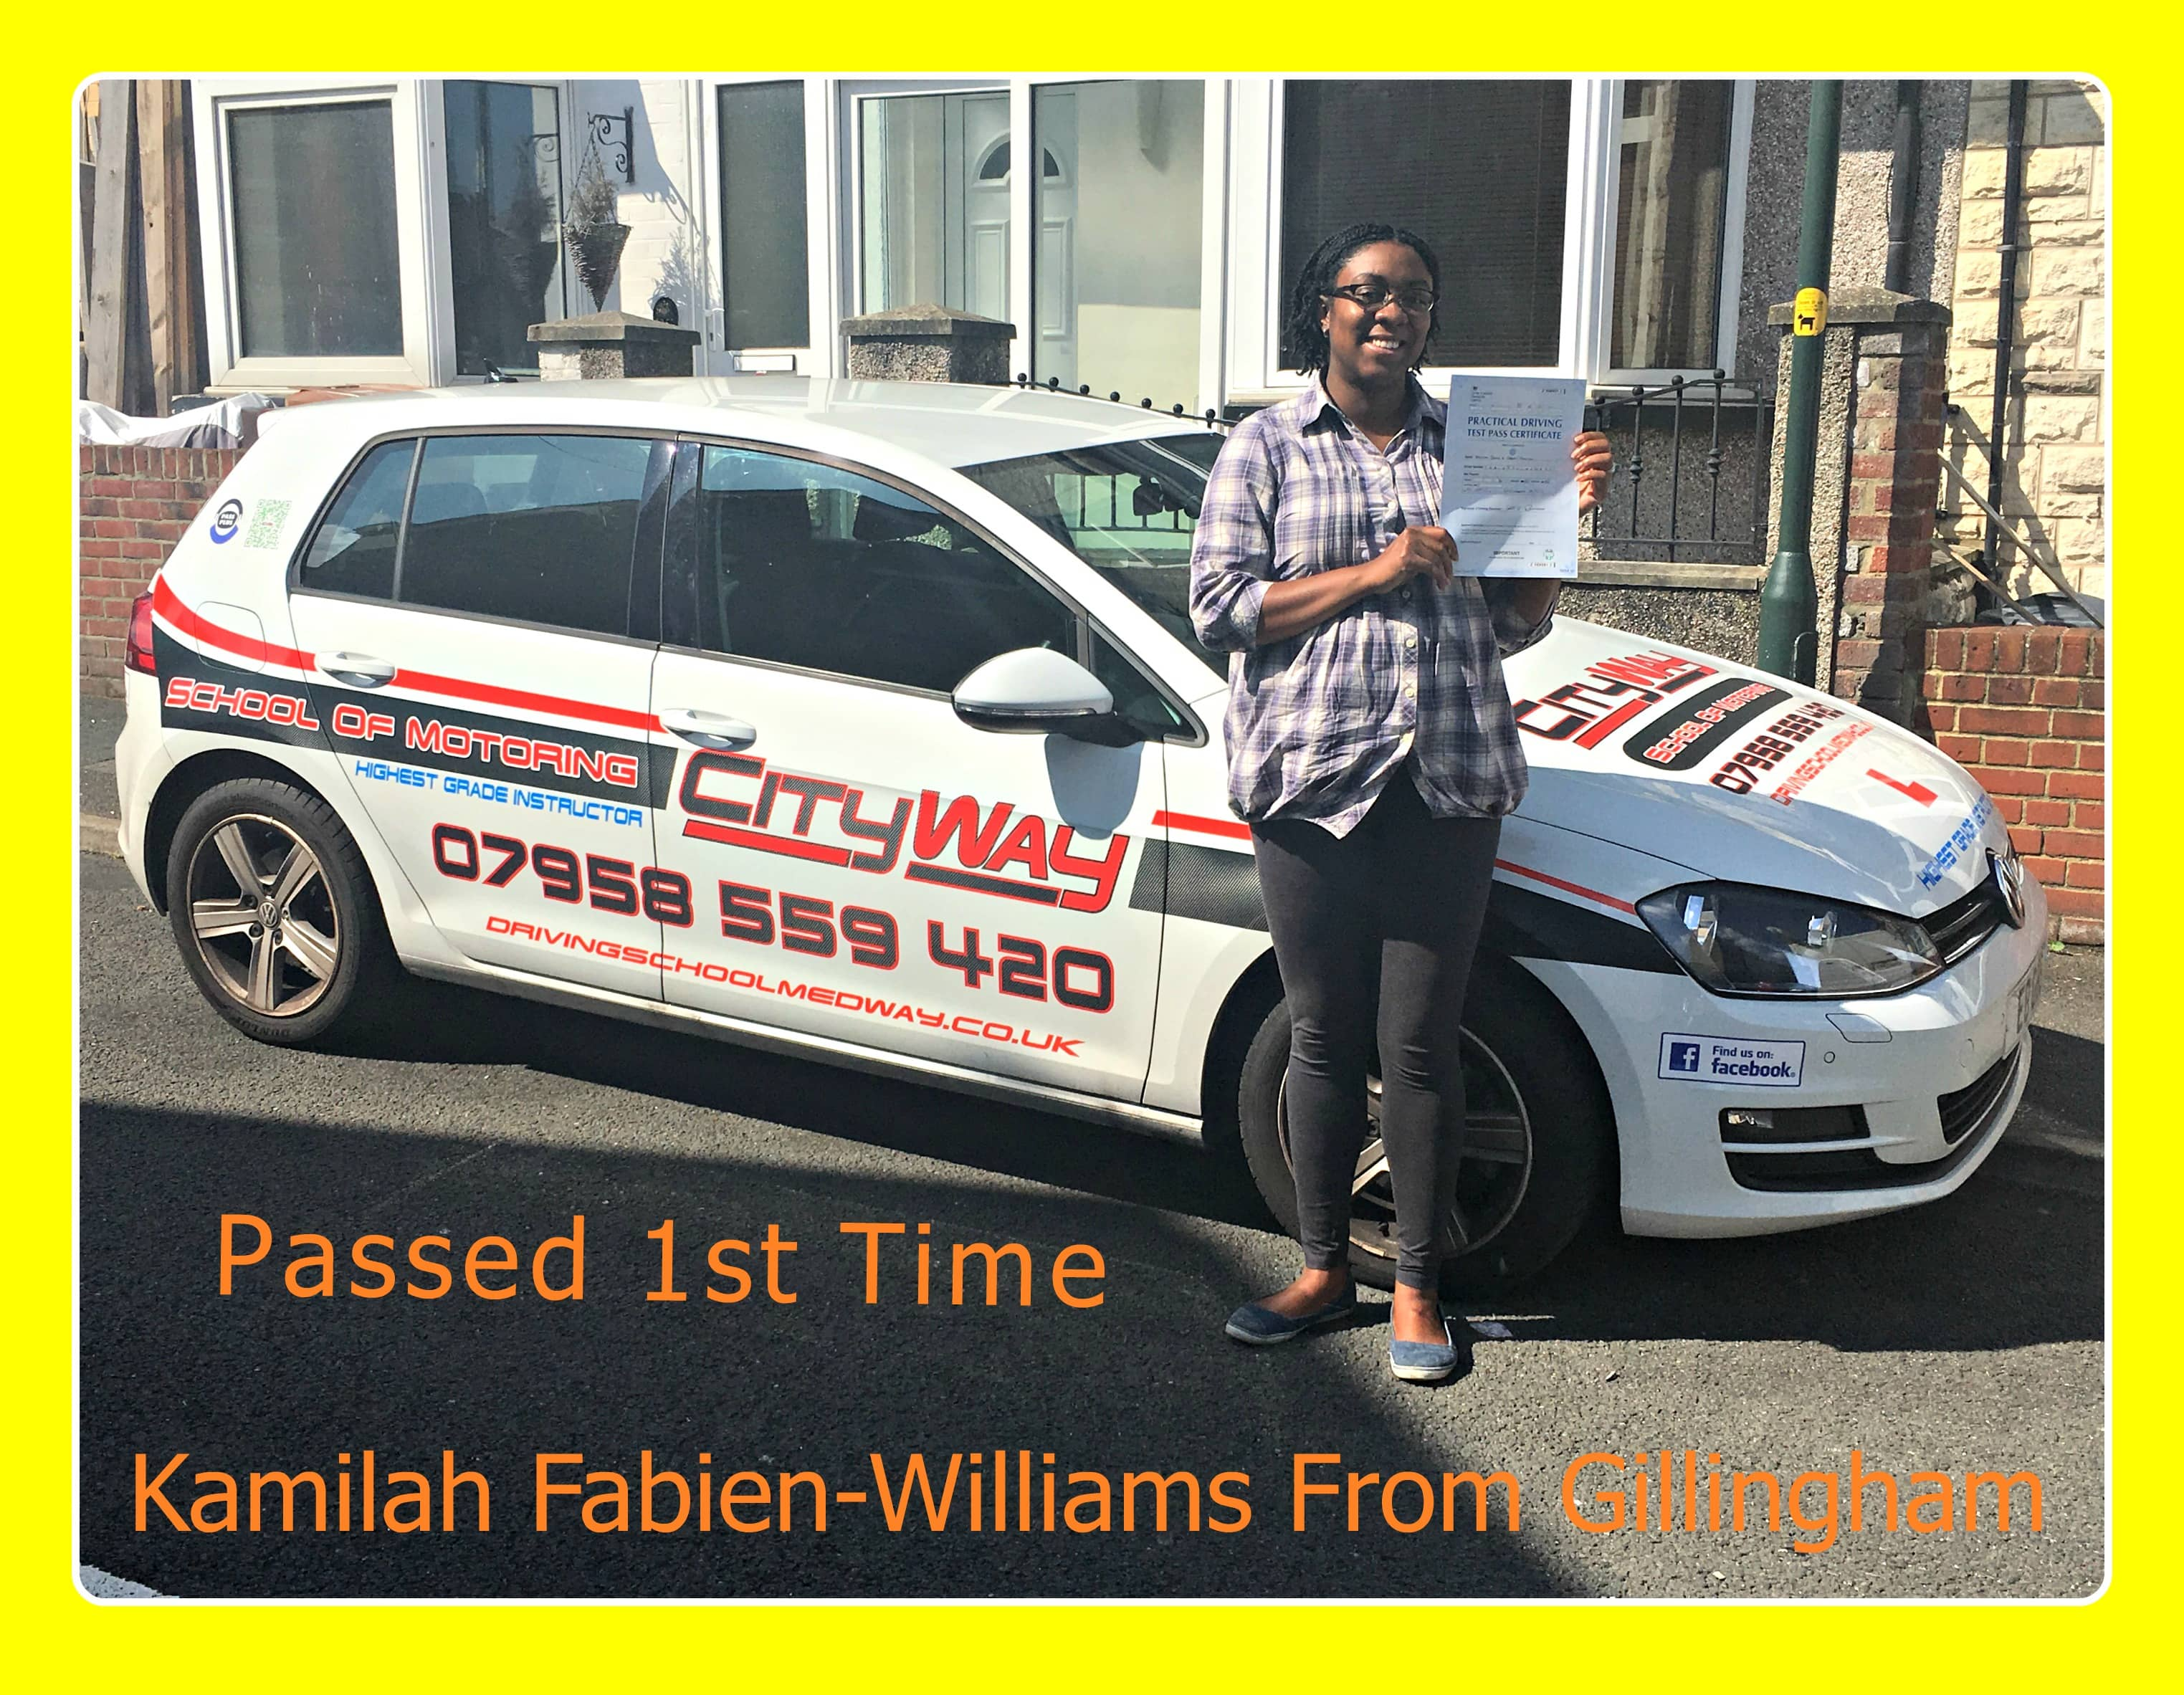 driving lessons gillingham | Kamilah Fabien-Williams